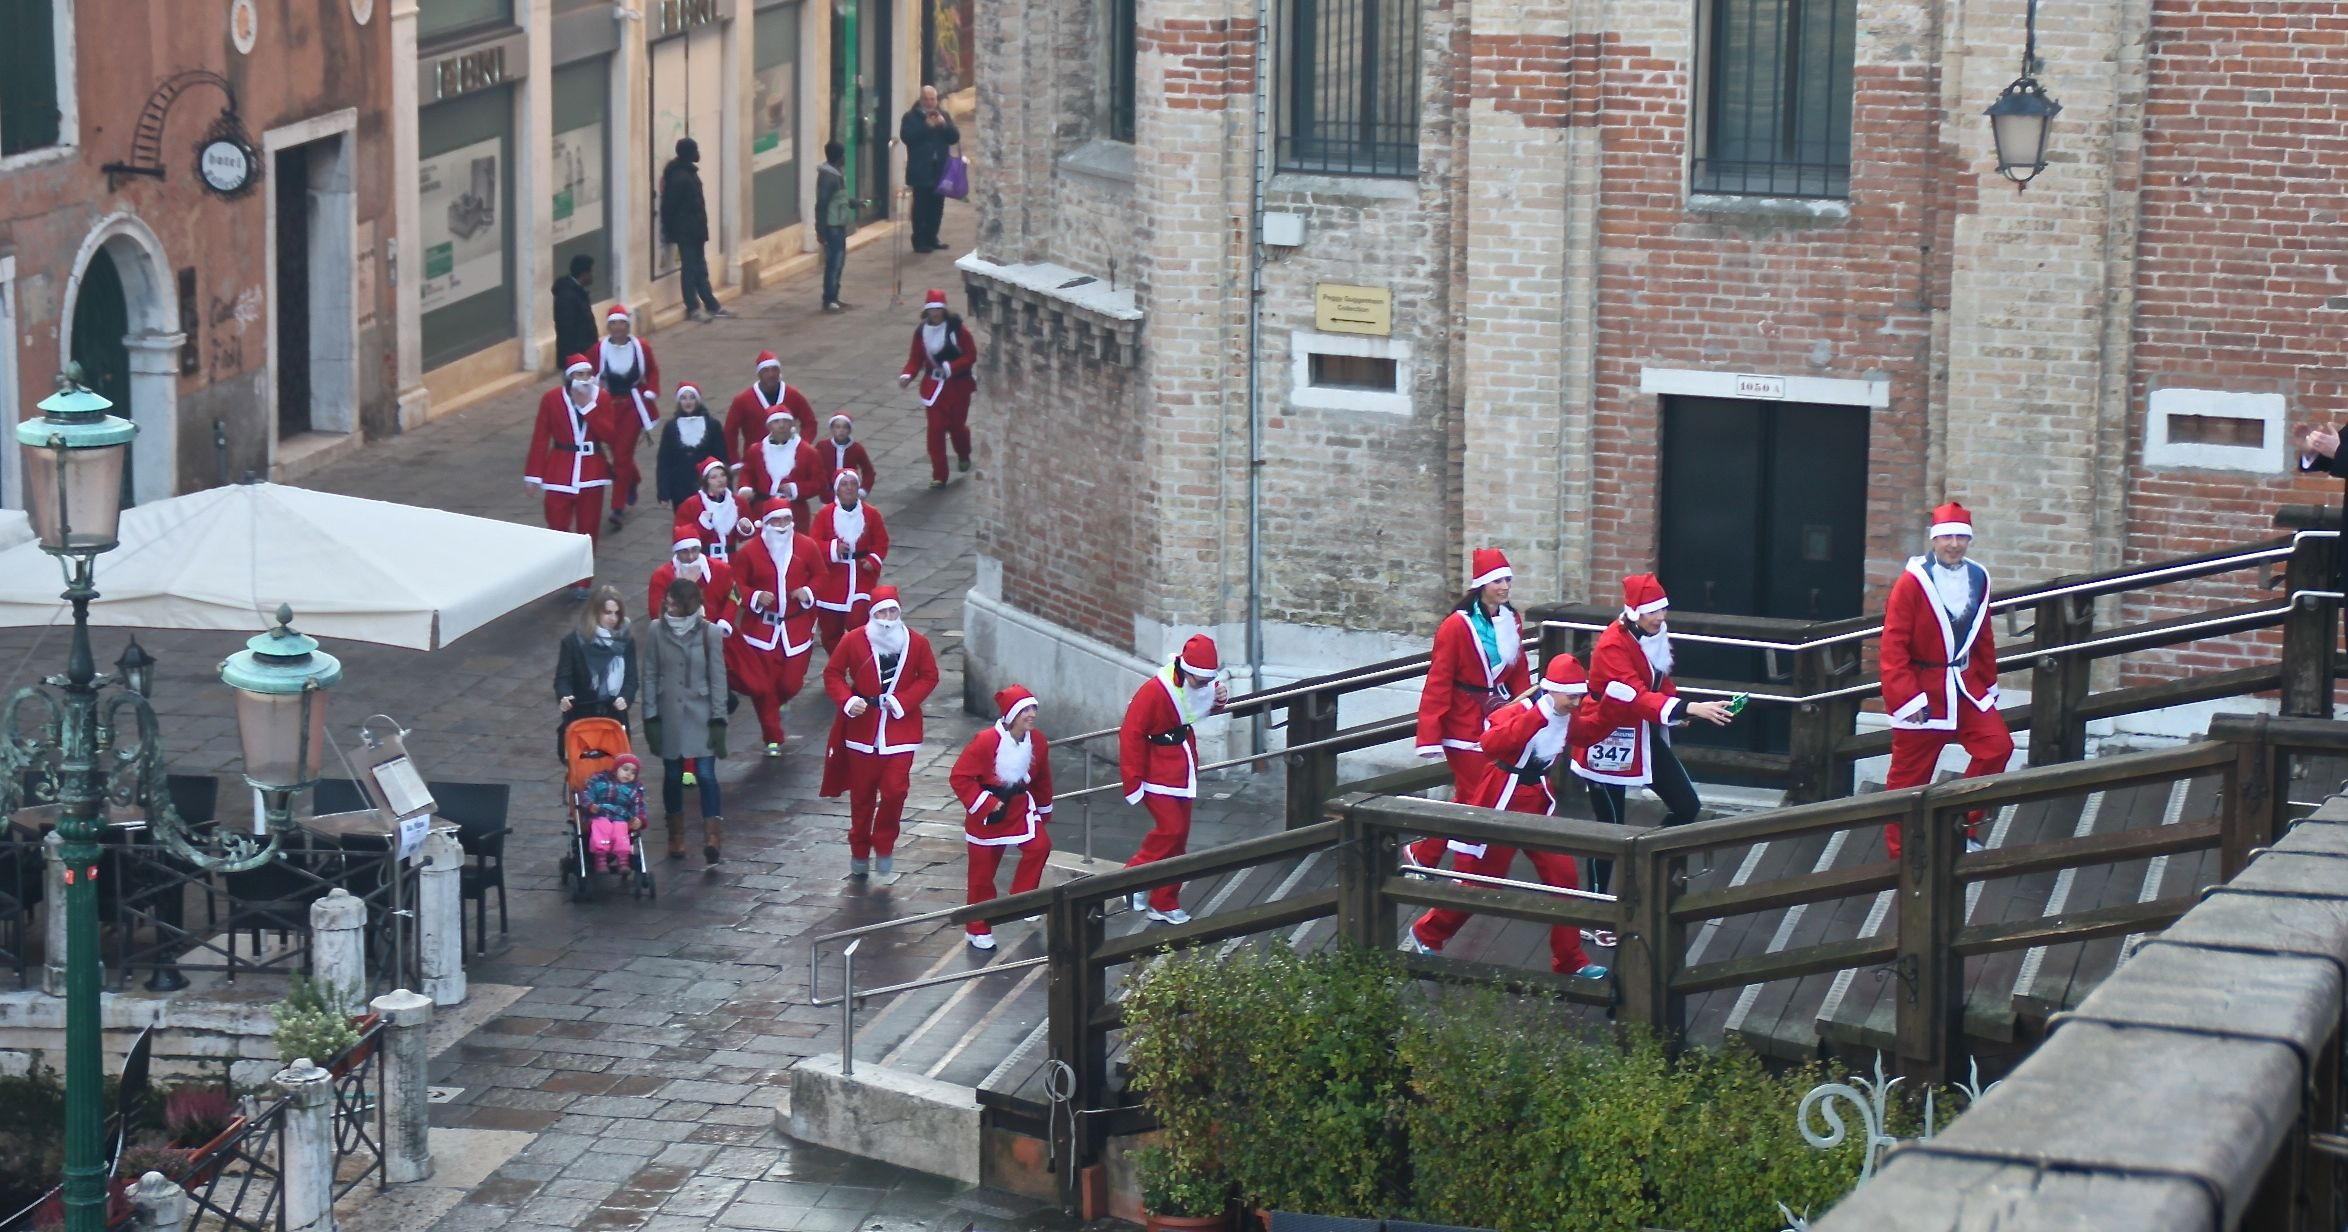 Babbo Natale fun-runners in the Dorsoduro district of Venice